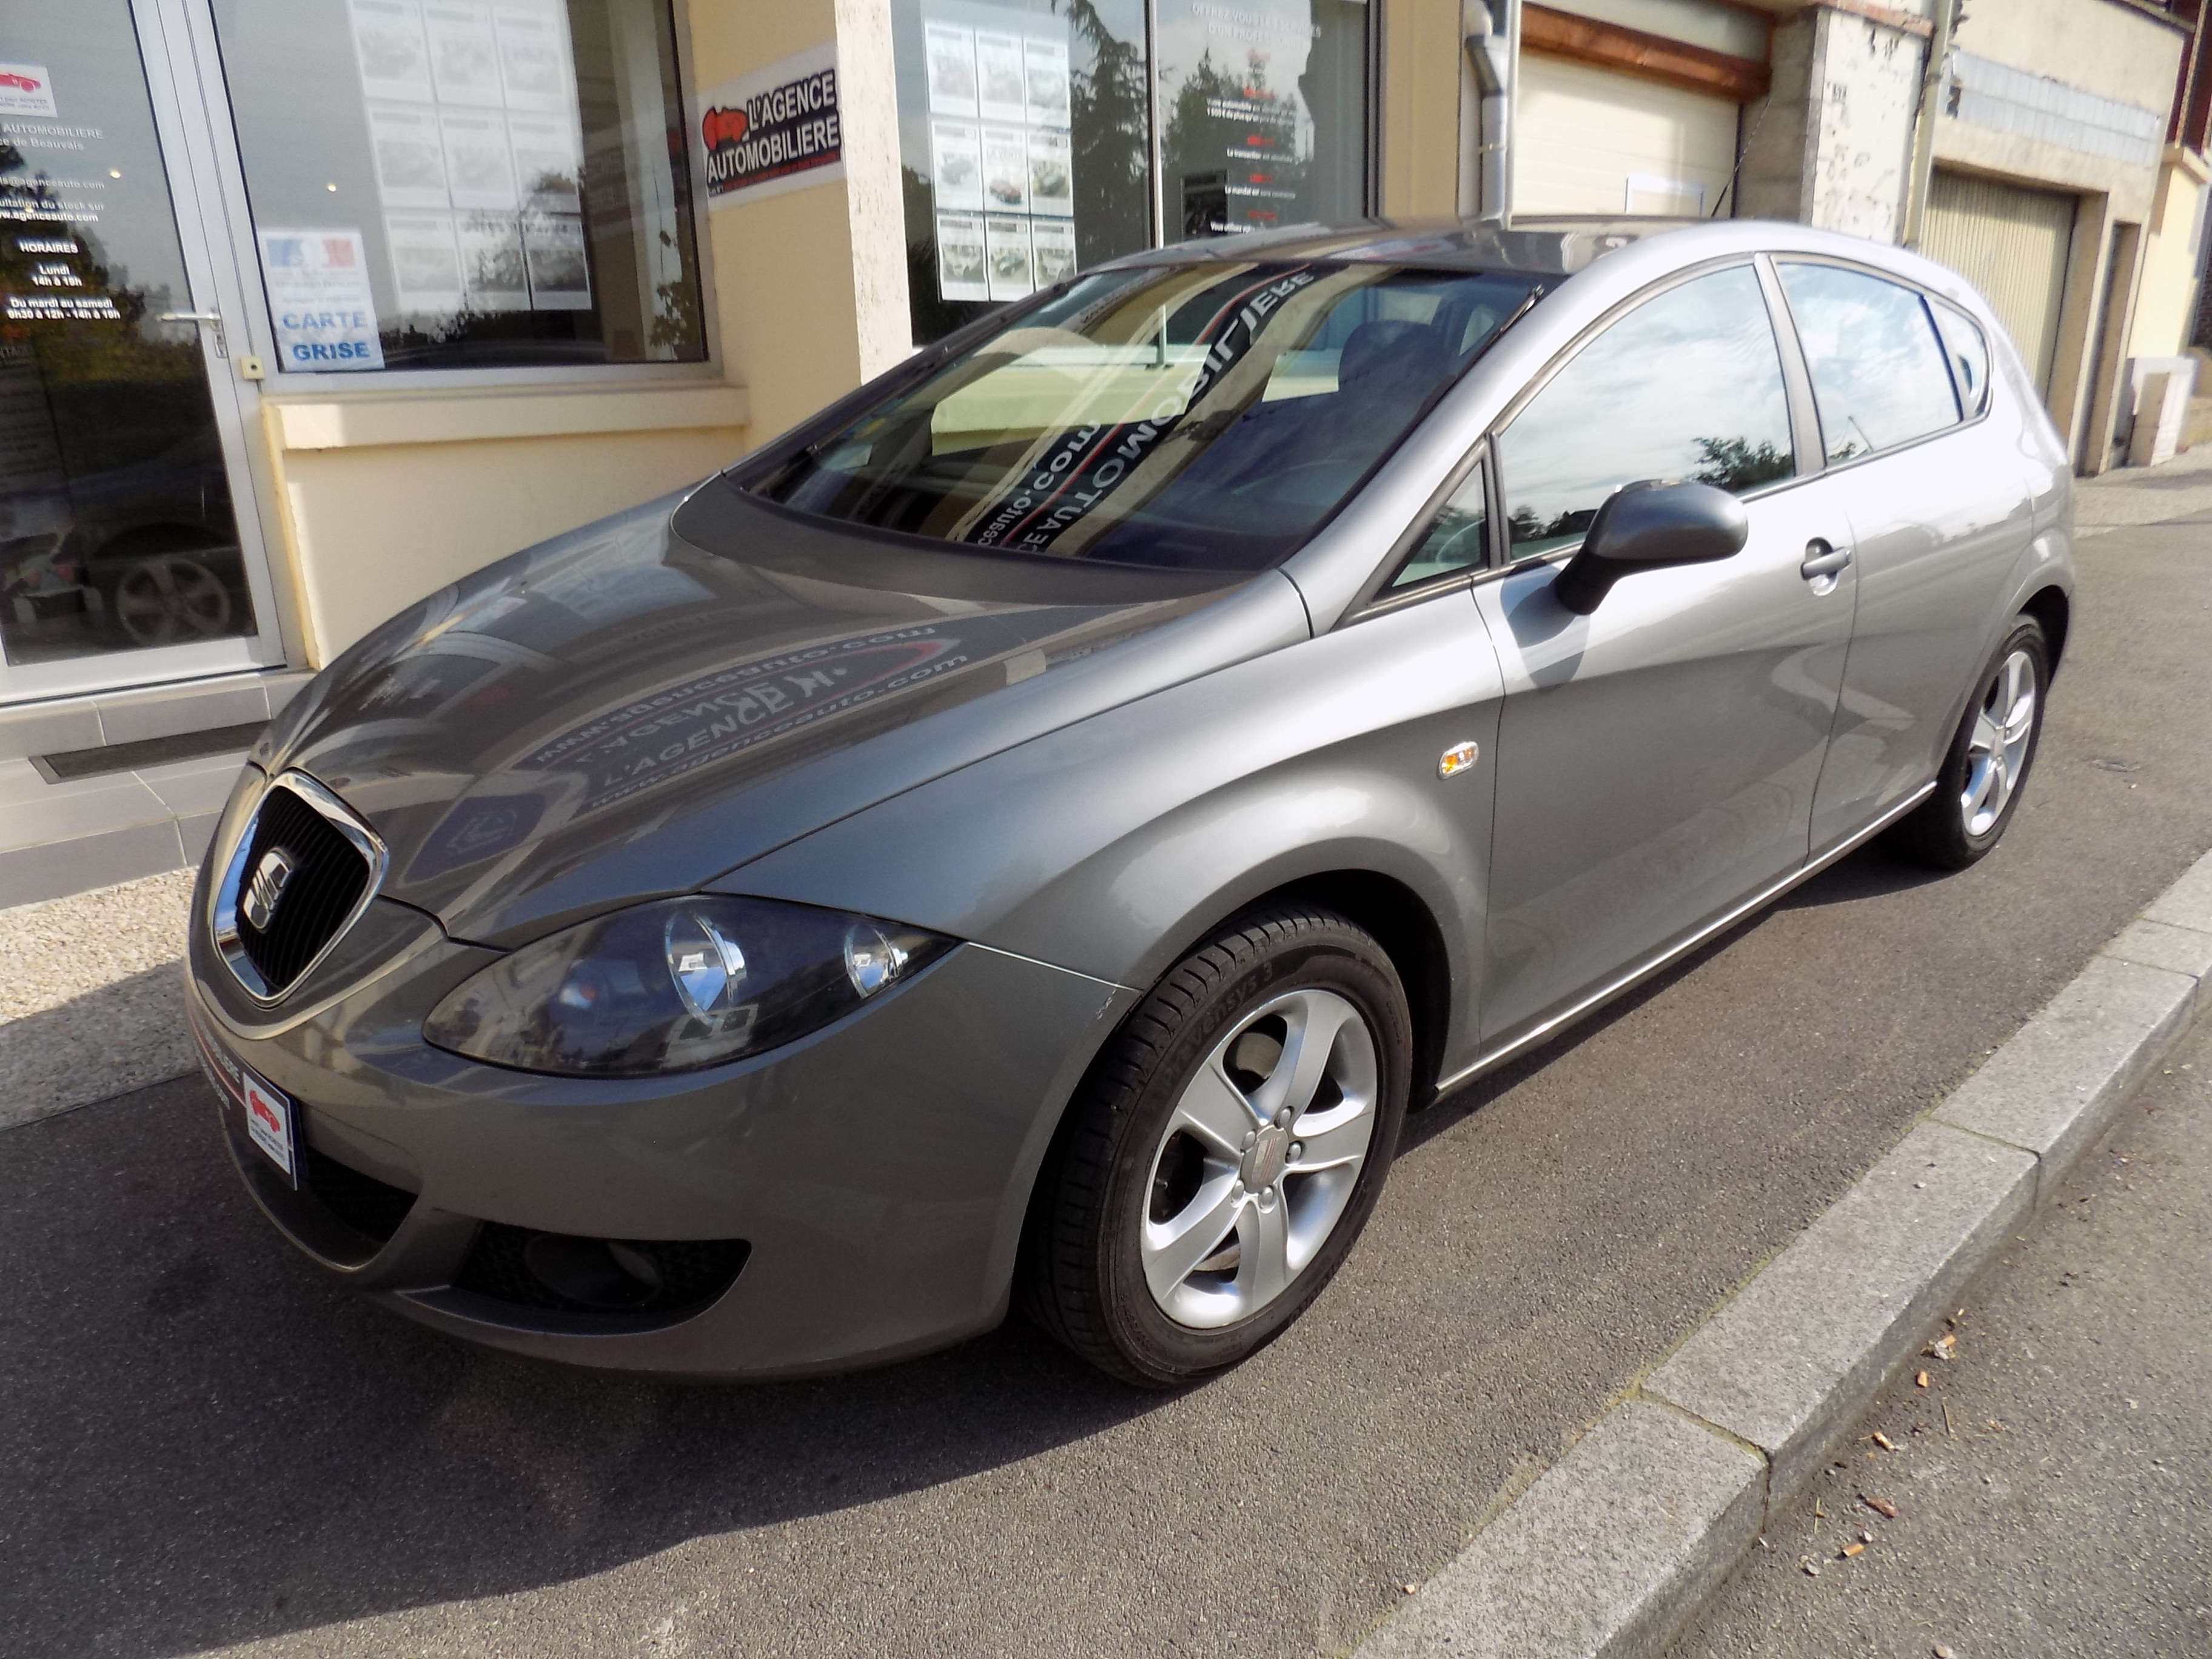 seat leon 1 9 tdi 105 cv occasion beauvais pas cher voiture occasion oise 60000 agence auto. Black Bedroom Furniture Sets. Home Design Ideas